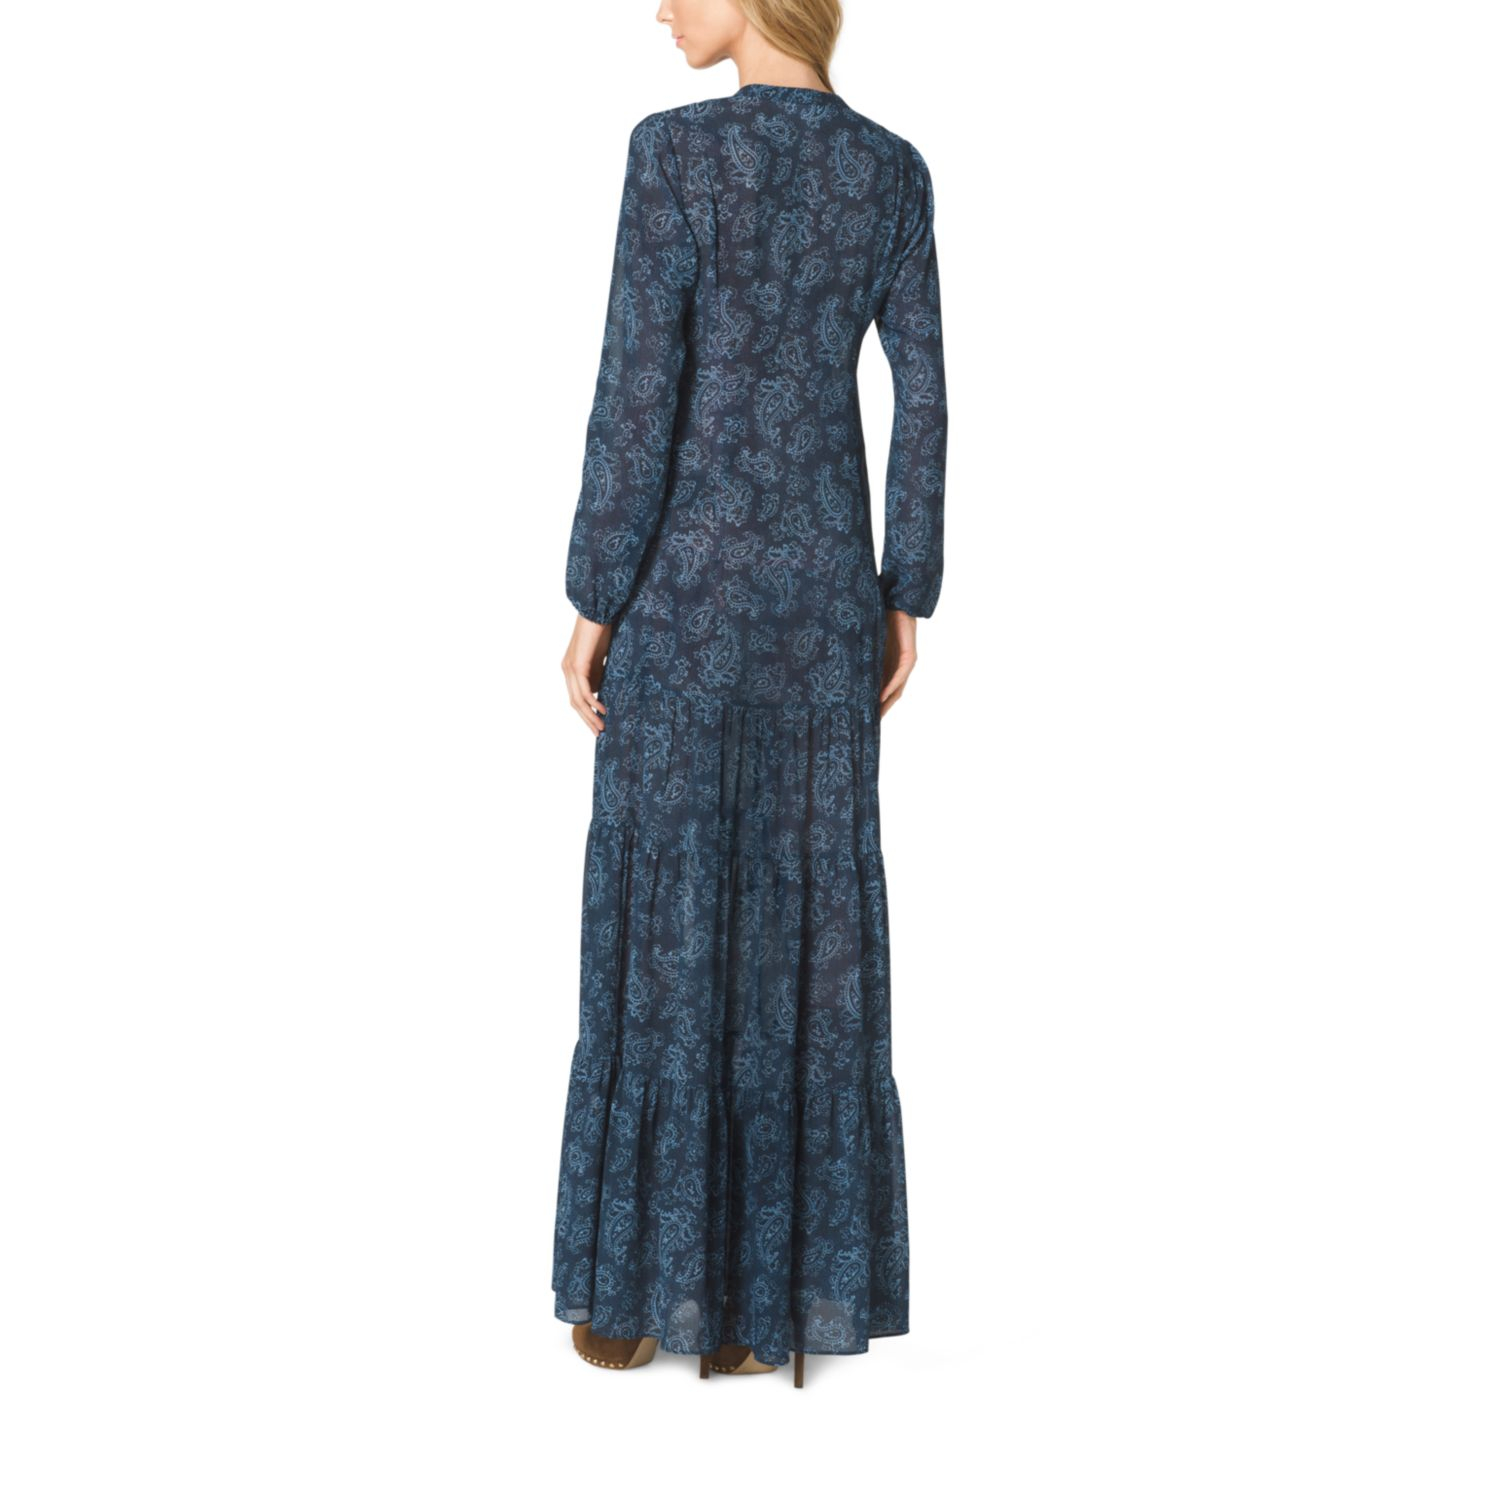 Lyst Michael Kors Paisleyprint Tiered Maxi Dress In Blue